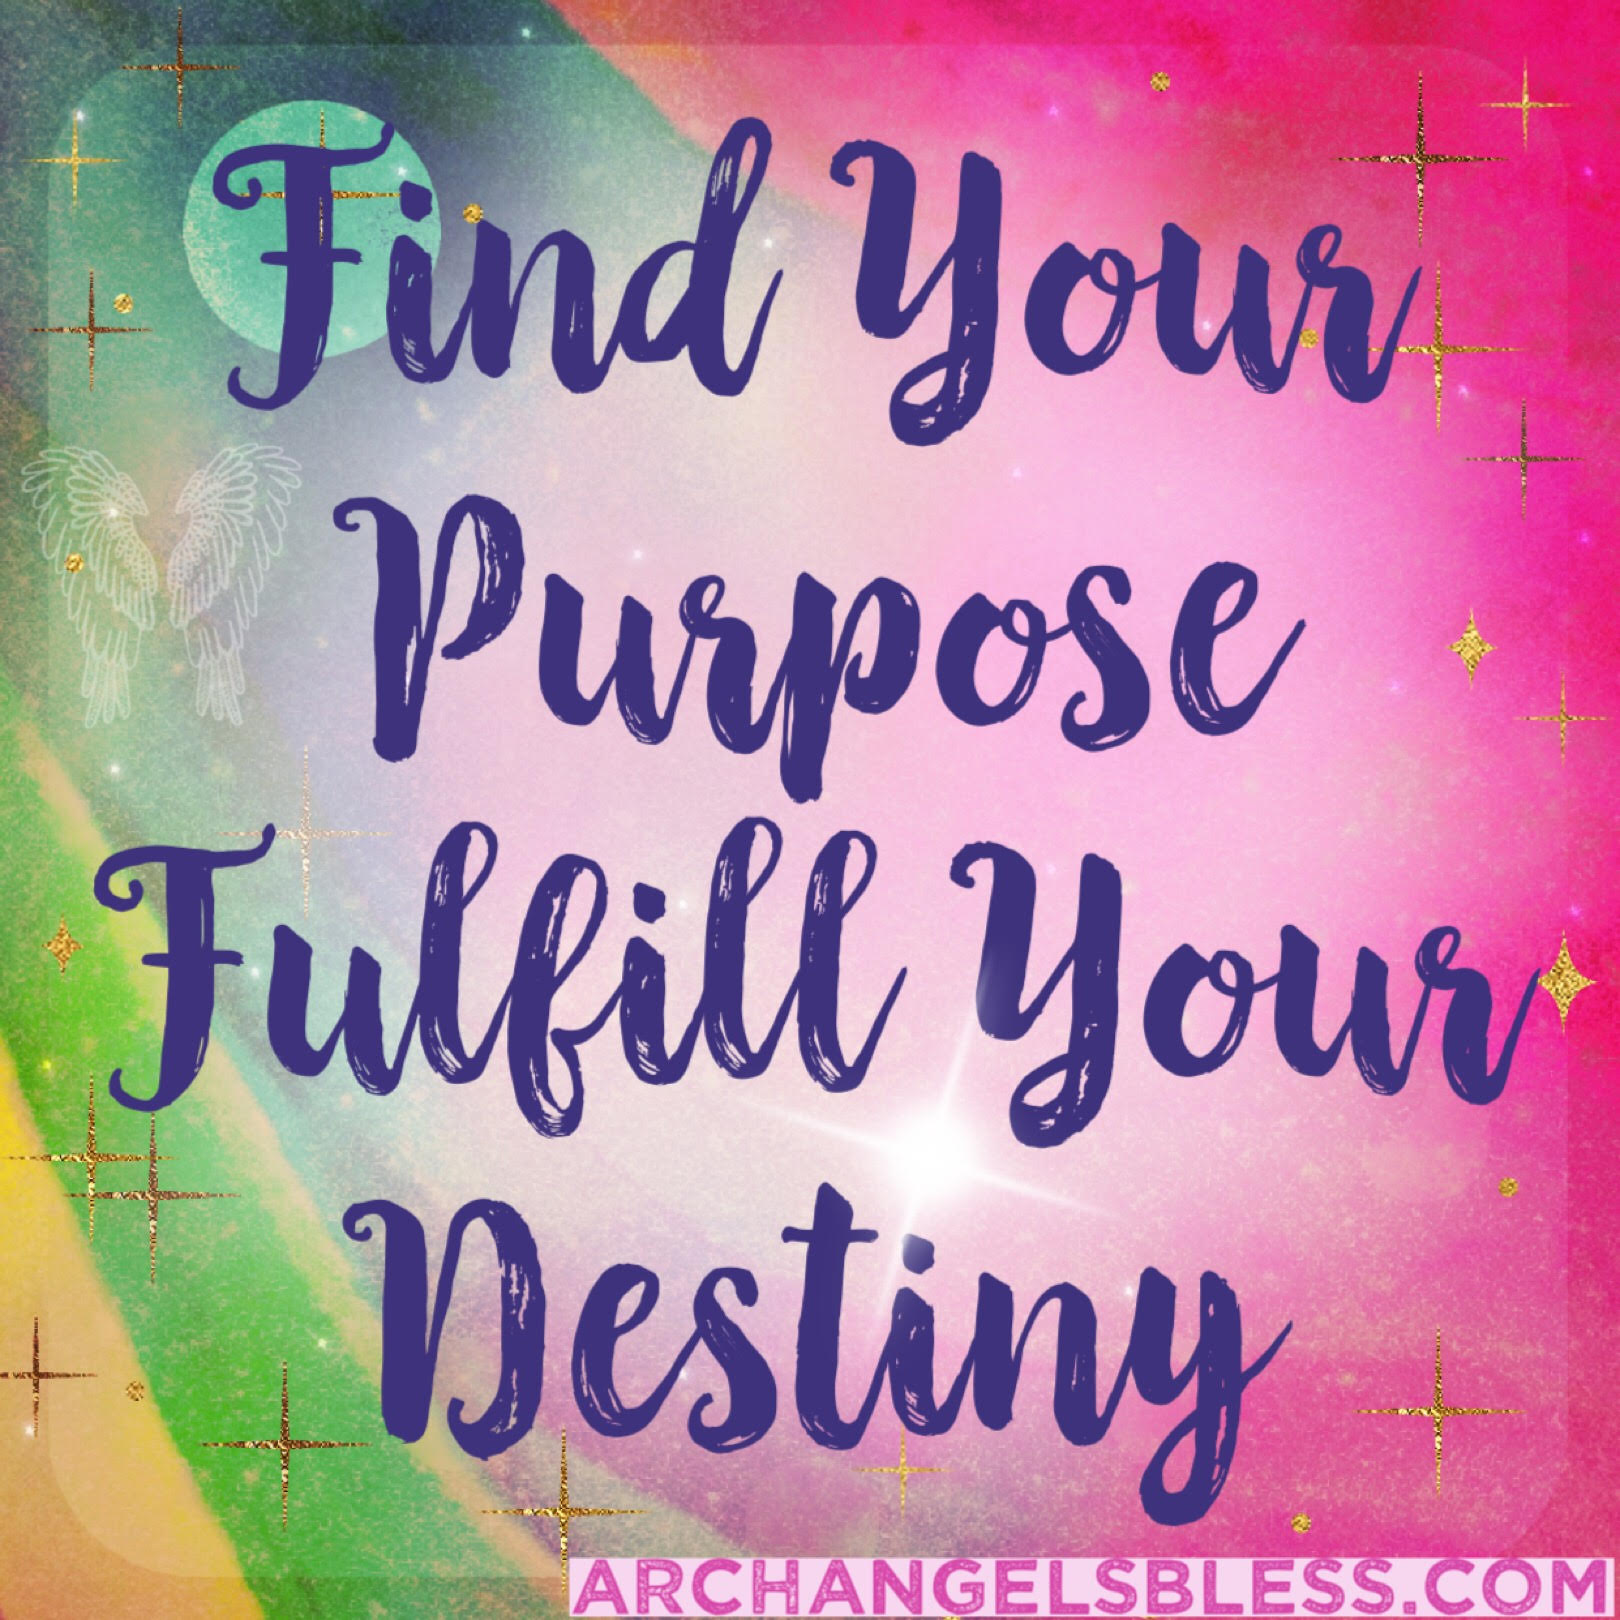 Find Your Purpose Live Angel Reading Group Call by Kimberly Dawn